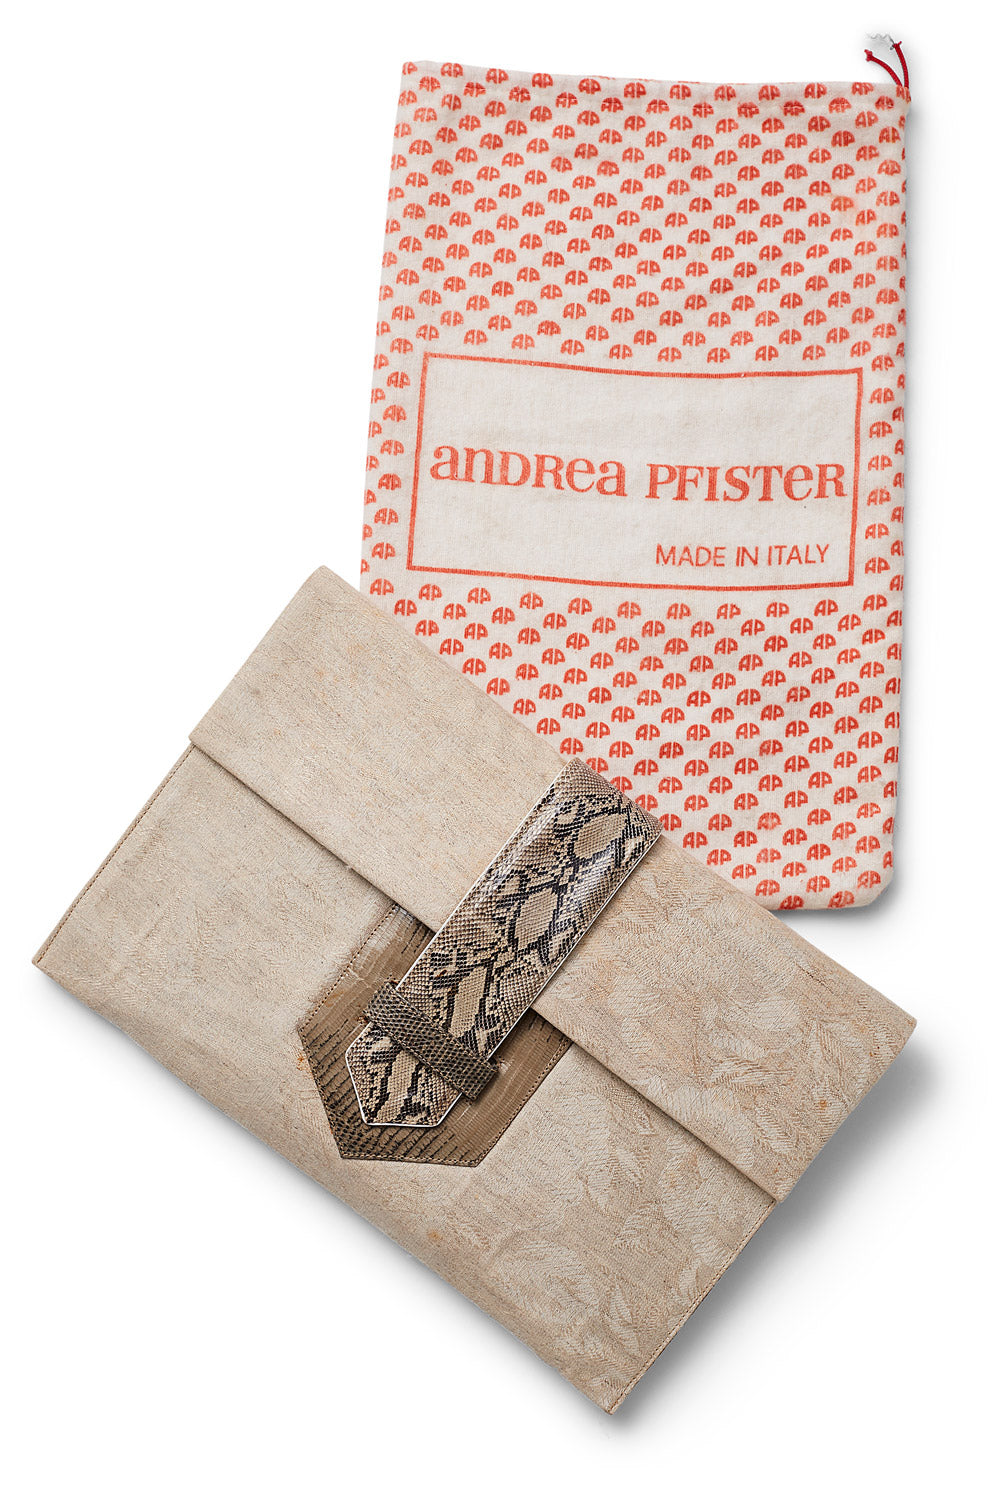 Andrea Pfister<br>1970's/80's brocade & snakeskin envelope clutch with crossbody strap